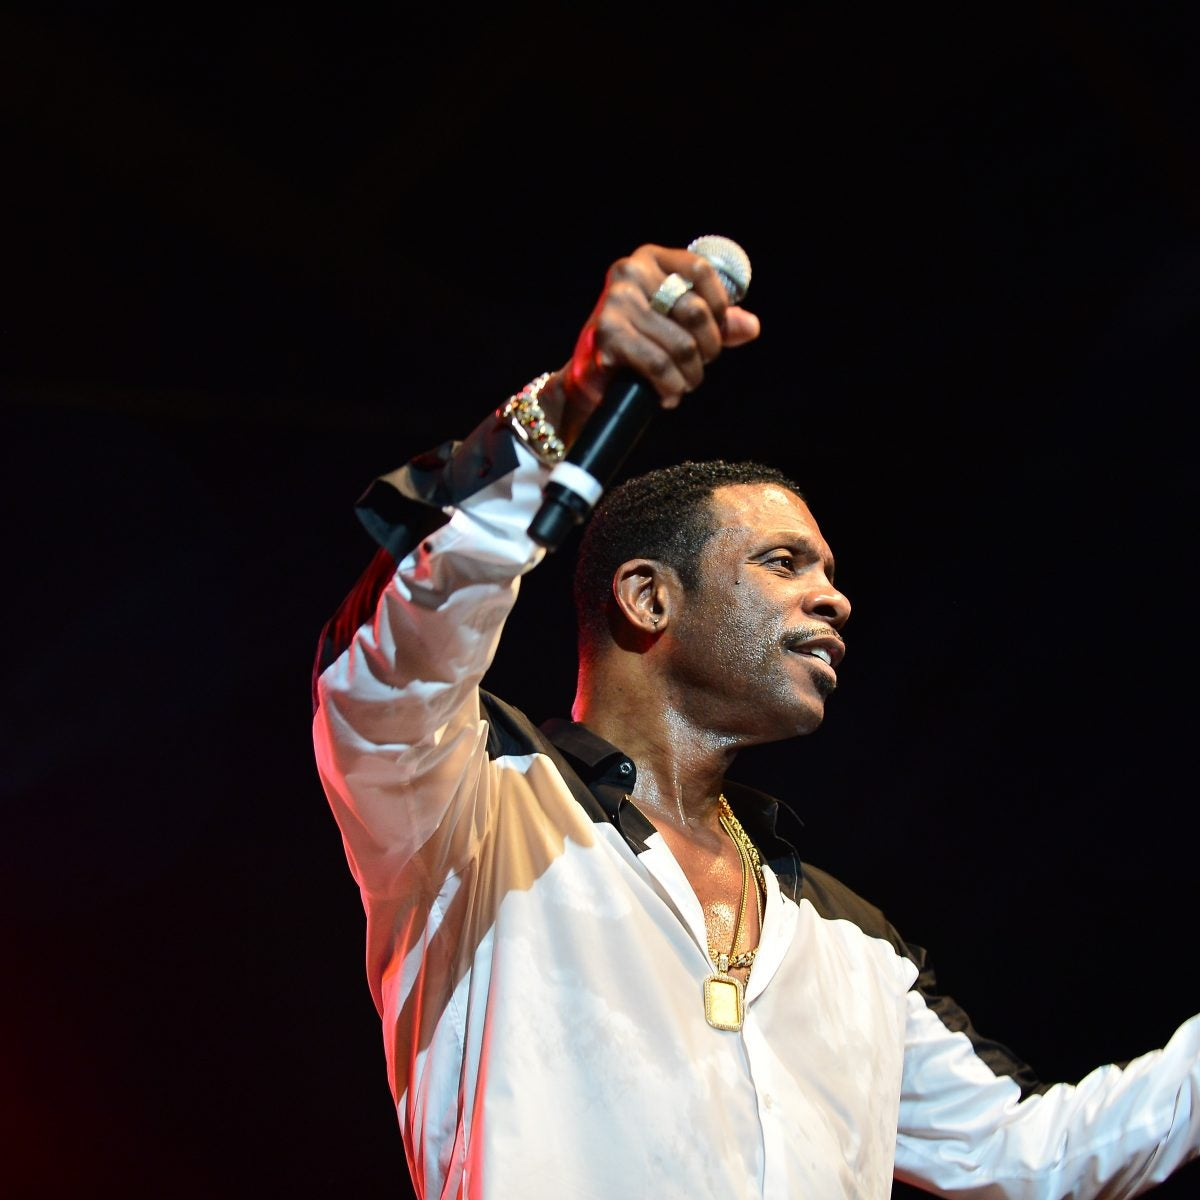 Our Favorite Photos of Birthday Boy Keith Sweat Showing Off His Signature Swag On Stage